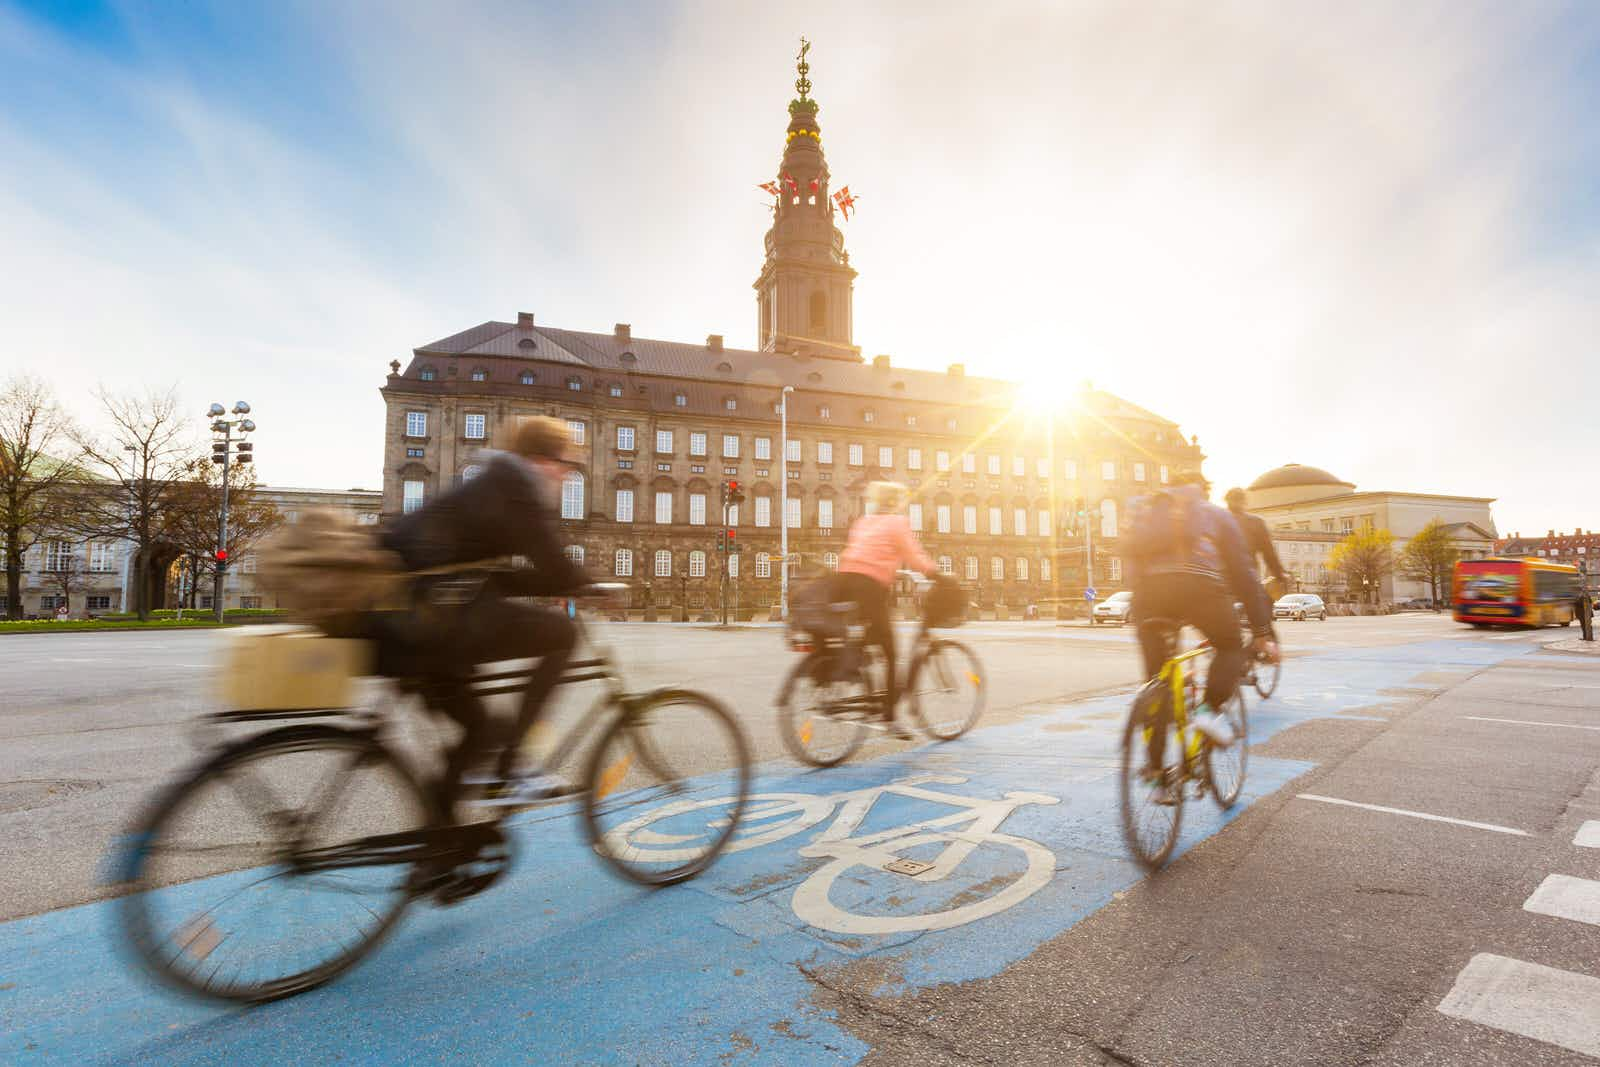 Blurred cyclists ride on a bike lane in Copenhagen, with the sun setting over Christiansborg palace.